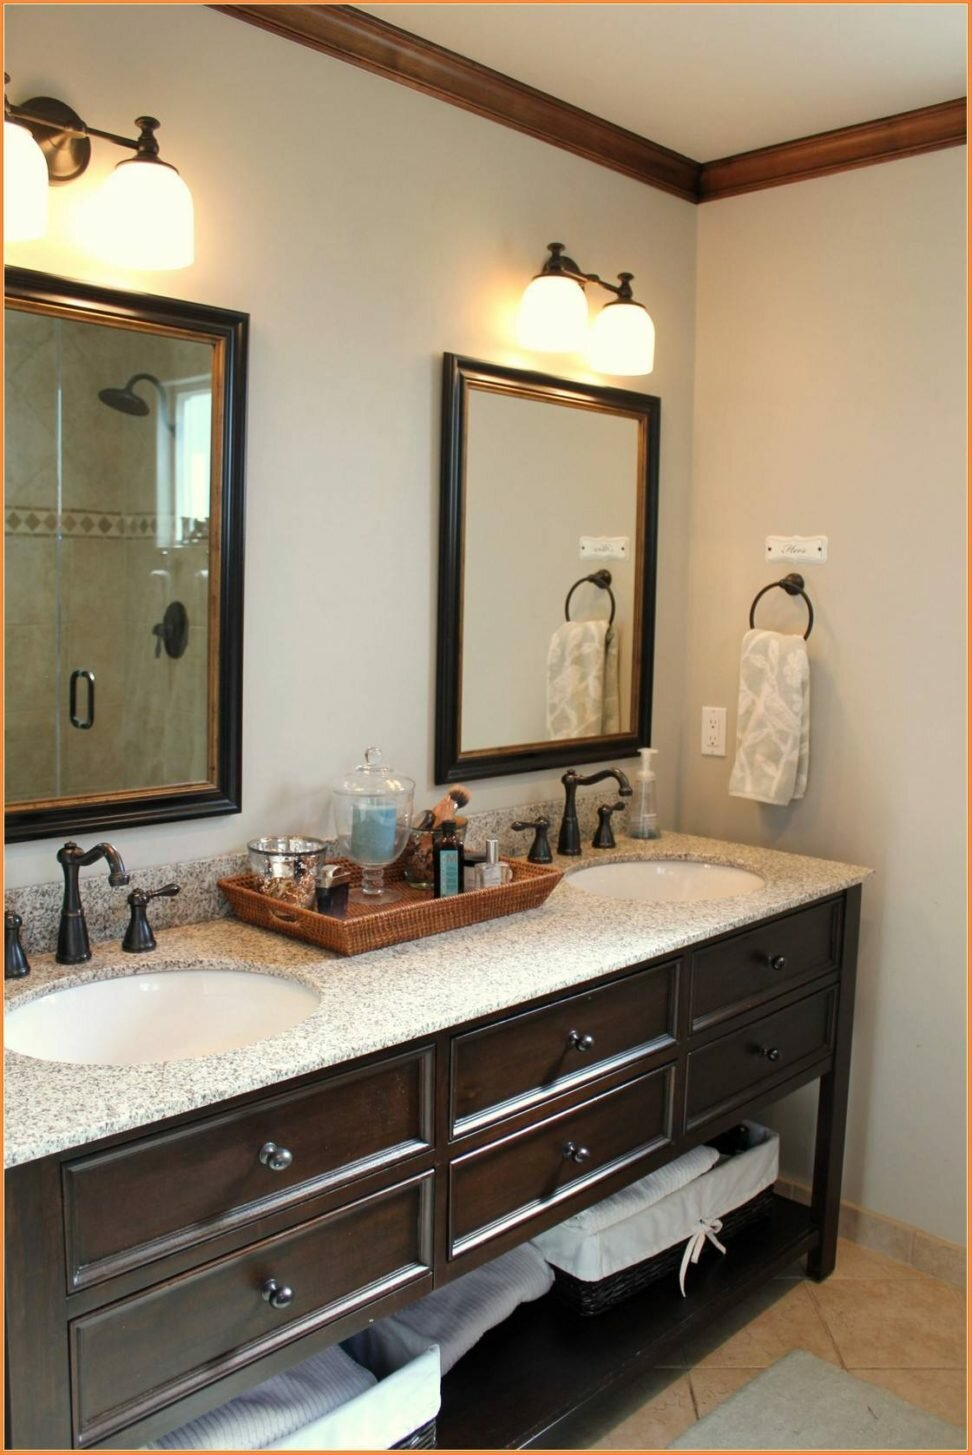 Crate And Barrel Bathroom Vanity | Pottery Barn Vanity | Restoration Hardware Sink Vanity